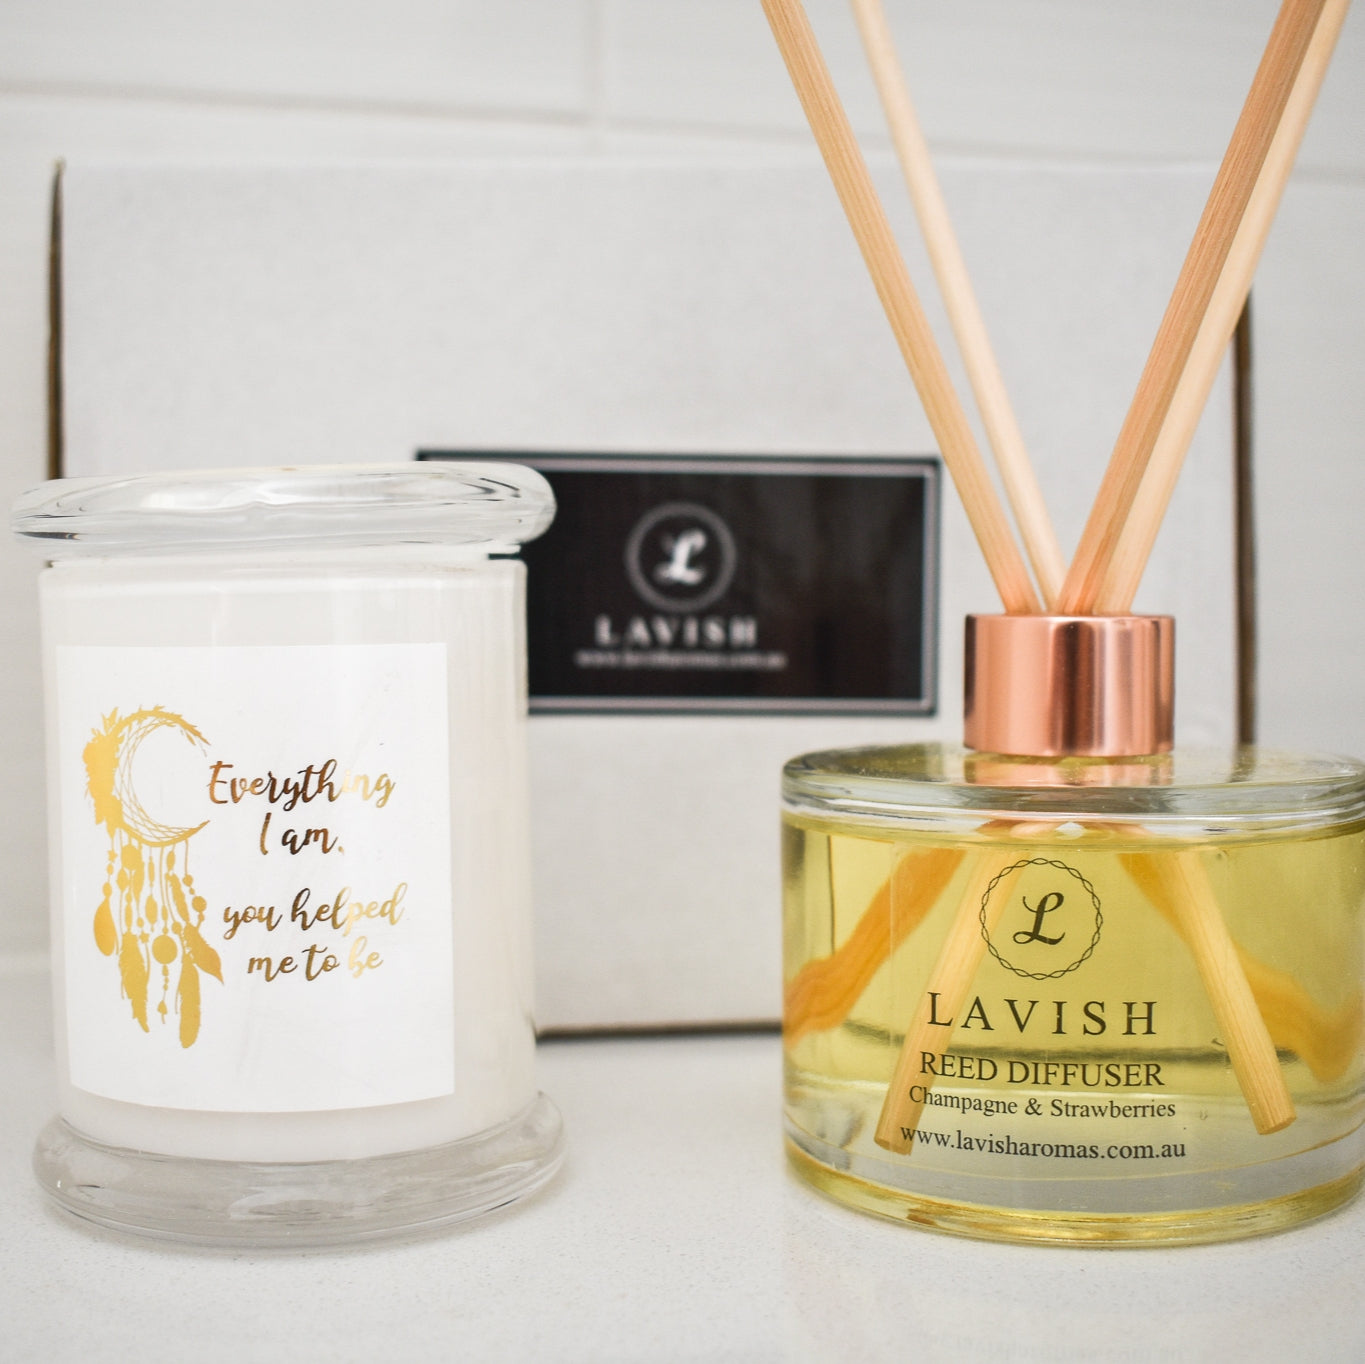 Candle & Diffuser Gift Set